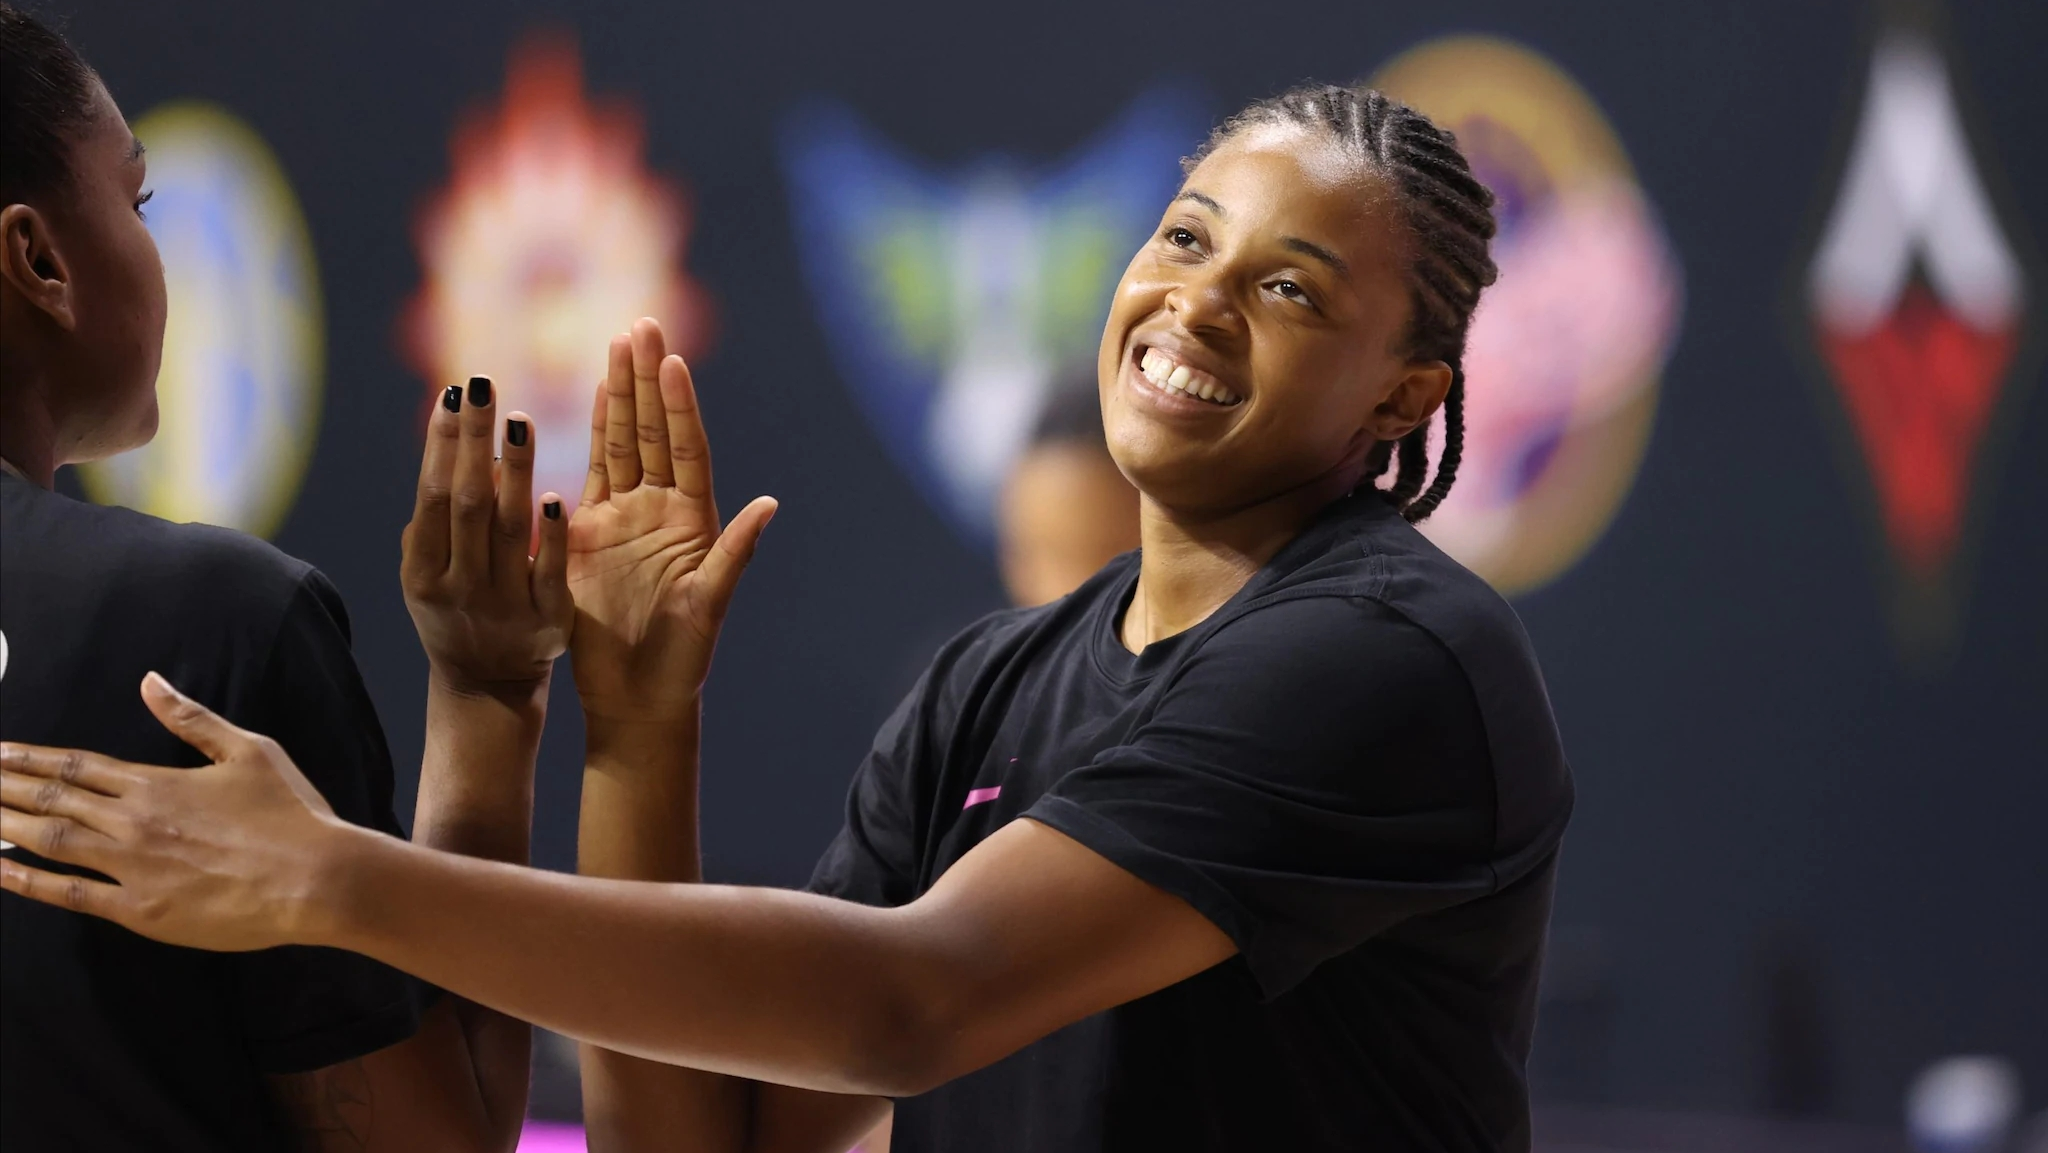 New Mystics forward Erica McCall primed and ready for her fifth season in the WNBA